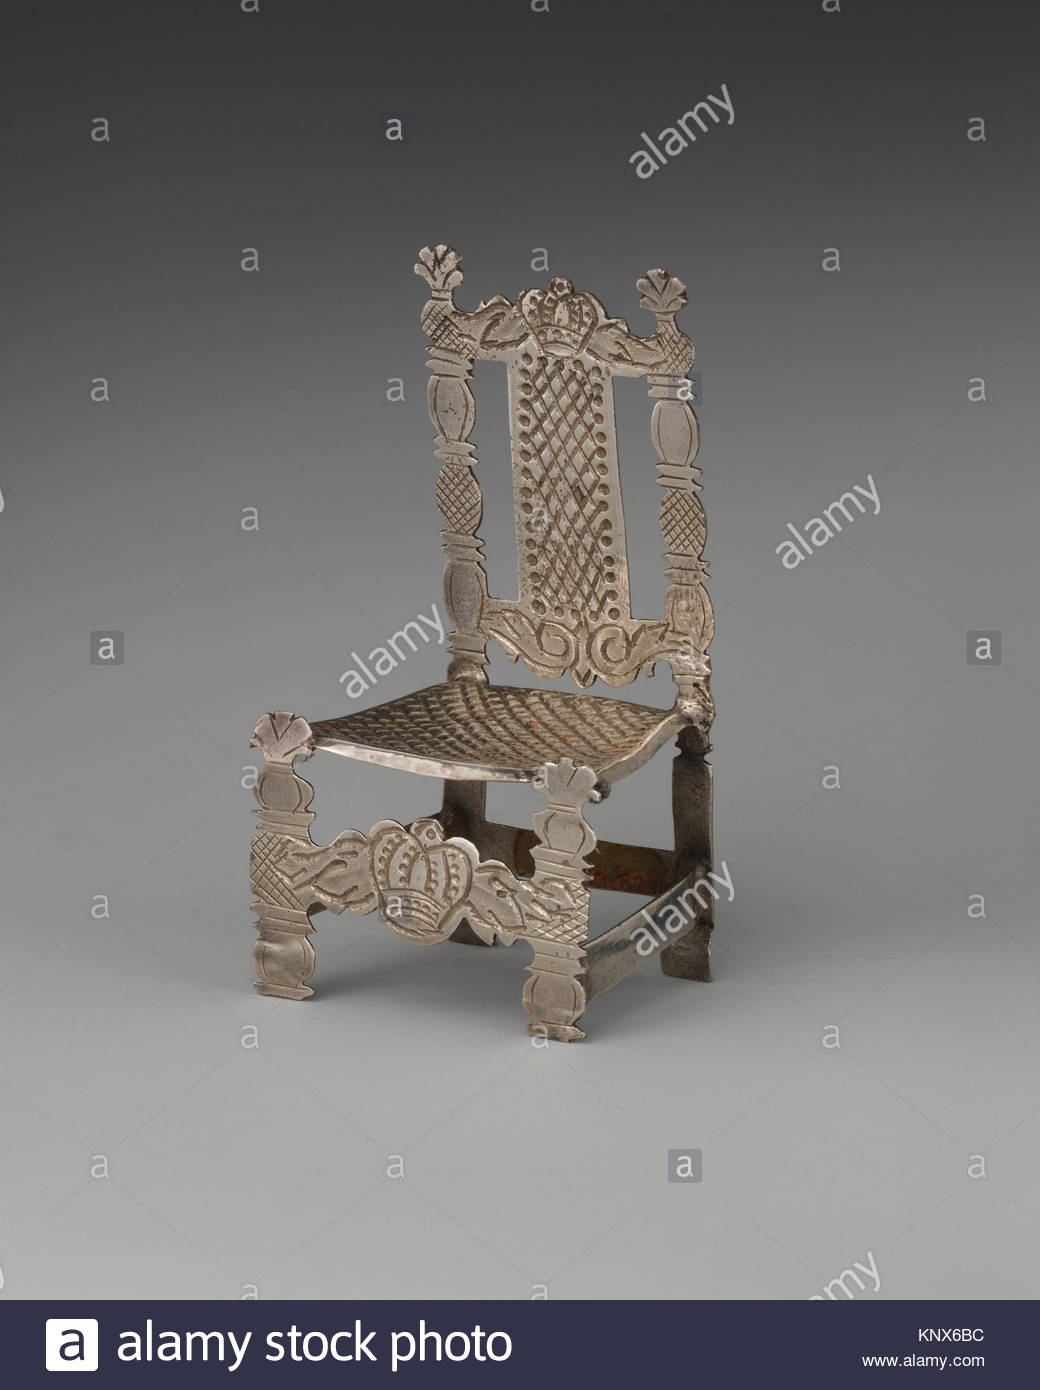 Crowned Chair Stock Photos & Crowned Chair Stock Images – Alamy Intended For Newcombe Warm Brown Windsor Rocking Chairs (#10 of 20)